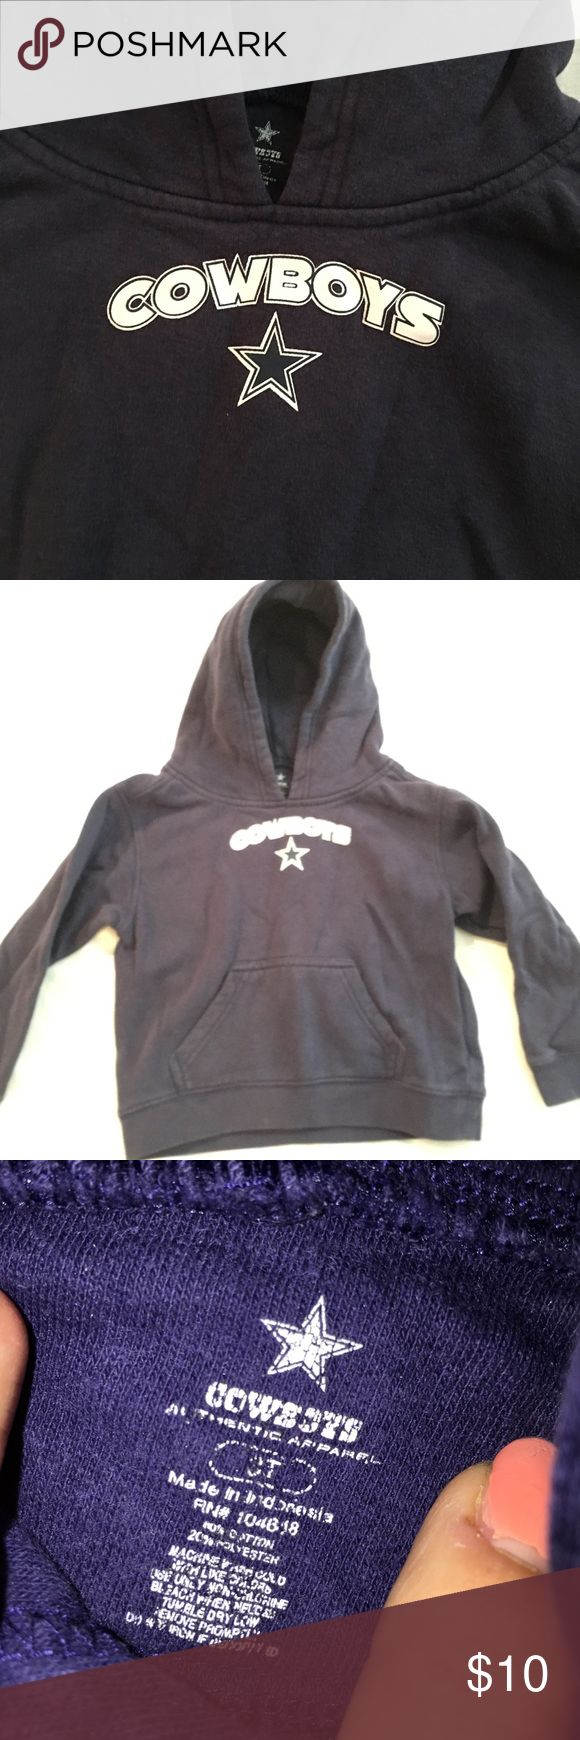 Dallas Cowboy hoodie sweatshirt size 3T Dallas Cowboy Jodie sweatshirt size 3T Shirts & Tops Sweatshirts & Hoodies